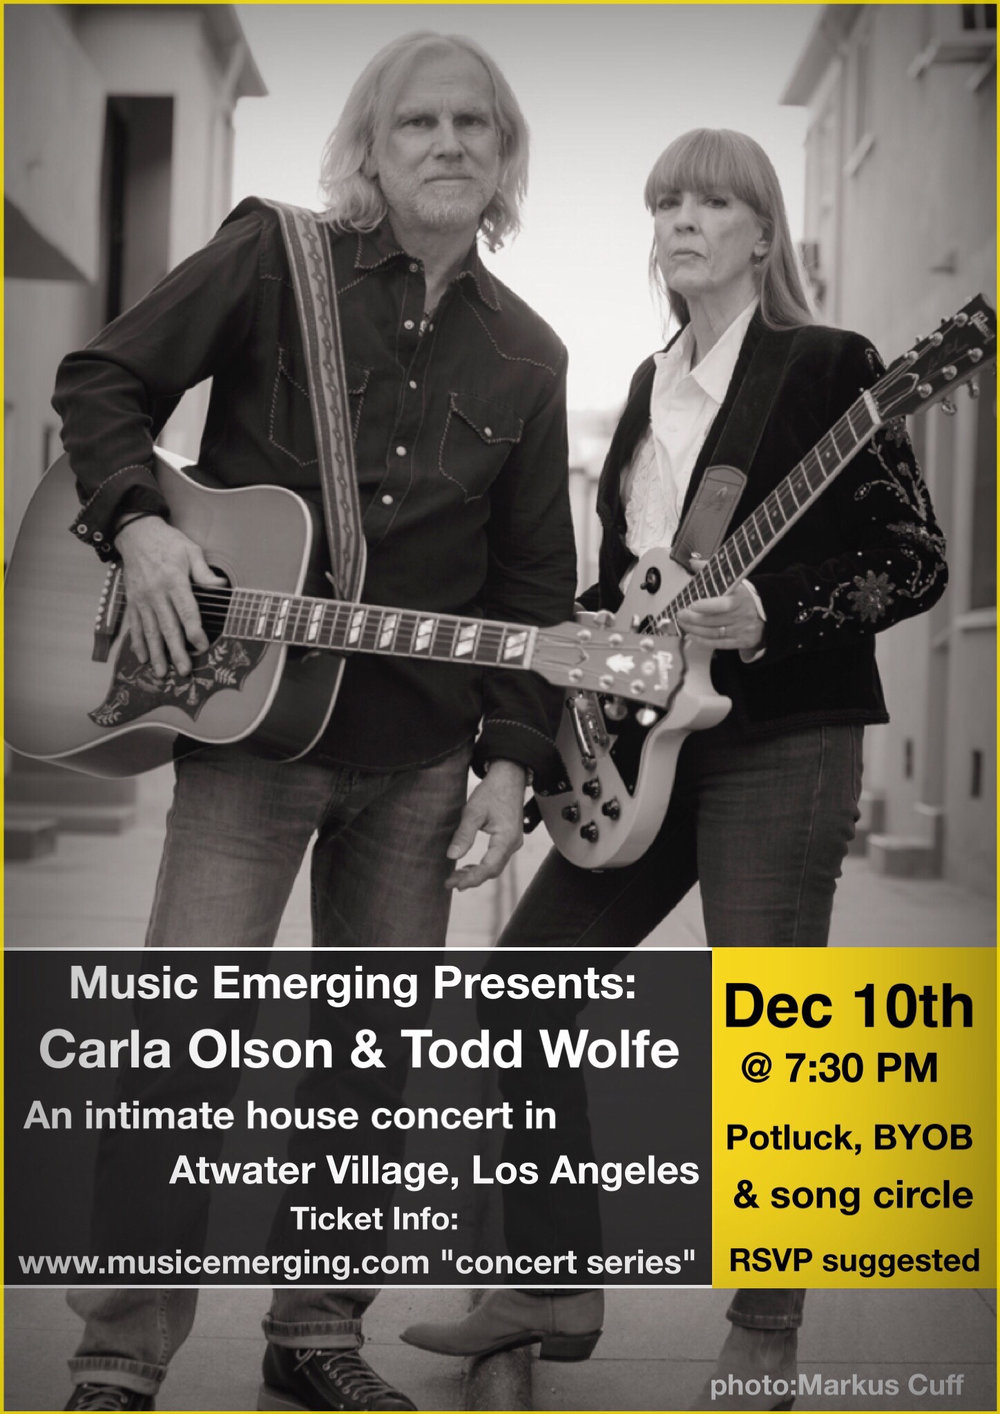 Music Emerging presents another stellar concert in Atwater Village, Los Angeles with artists Carla Olson and Todd Wolfe. This is our 6th successful show! Concert will take place in the home of artist Robert Soffian Seating is limited so an RSVP ticket is highly recommended. Upon ticket order-you will receive address within a few hours... TICKETS: available through EVENTBRITE Event is BYOB and a dish for pot luck. Plenty of parking in the area. Song circle after if you would like to bring instrument or borrow one. About the Artists: Carla Olson is a singer, songwriter, guitar player and producer. Her 1984 debut album, Midnight Mission, was as leader of the Textones and included Gene Clark, Ry Cooder and Don Henley as guests. A few years later Gene and Carla recorded what many view as the first Americana album, So Rebellious A Lover. Since then Carla has released solo albums and a live record with Mick Taylor. She is one of the few currently active women record producers and includes among her credits Paul Jones, (Manfred Mann), Phil Upchurch, Jake Andrews, Joe Louis Walker, Chubby Tavares and Barry Goldberg (Electric Flag, The Rides). Her recent duets album, Have Harmony, Will Travel, featured Richie Furay, Rob Waller, Juice Newton, John York and James Intveldt. Todd Wolfe spent five years touring the world with Sheryl Crow including writing and recording with Sheryl.  Since Todd's departure from Sheryl's band, he has spent the past 15 years touring Europe with his own band and releasing nine solo albums. Todd has also recorded with legendary Mountain guitarist-singer Leslie West, lending his guitar to two Mountain albums and three of Leslie's solo albums. Before Todd's work with Sheryl Crow and Leslie West he recorded and toured Japan with Carla Olson. Some of Todd's songs have been covered by artists, Stevie Nicks, Faith Hill and Deborah Coleman, to name a few. Together Carla & Todd perform original songs and some favorites by others in an intimate duo setting. Carla Olson website Todd Wolfe website Opening up the show is acoustic duo Cynthia Brando and Ed Tree. Questions? Email musicemerging@gmail.com